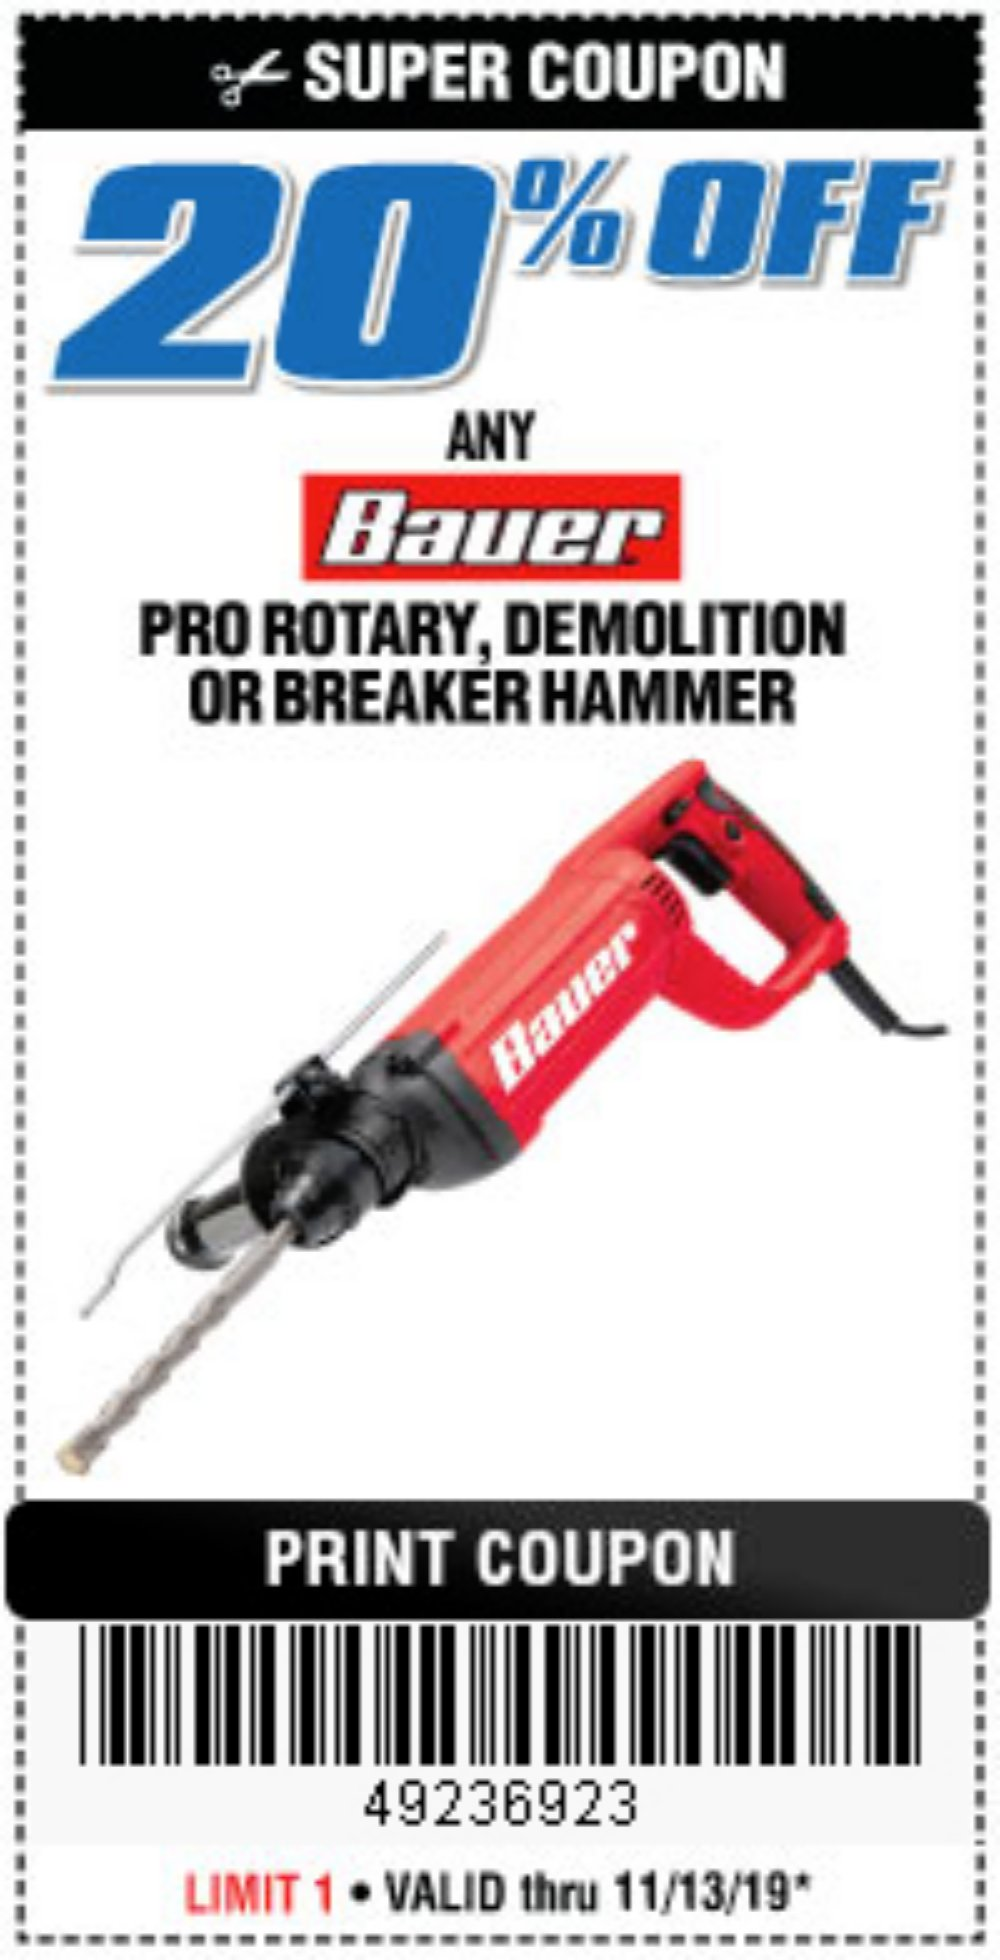 Harbor Freight Coupon, HF Coupons - Bauer rotary, breaker, demolition hammers 20% off